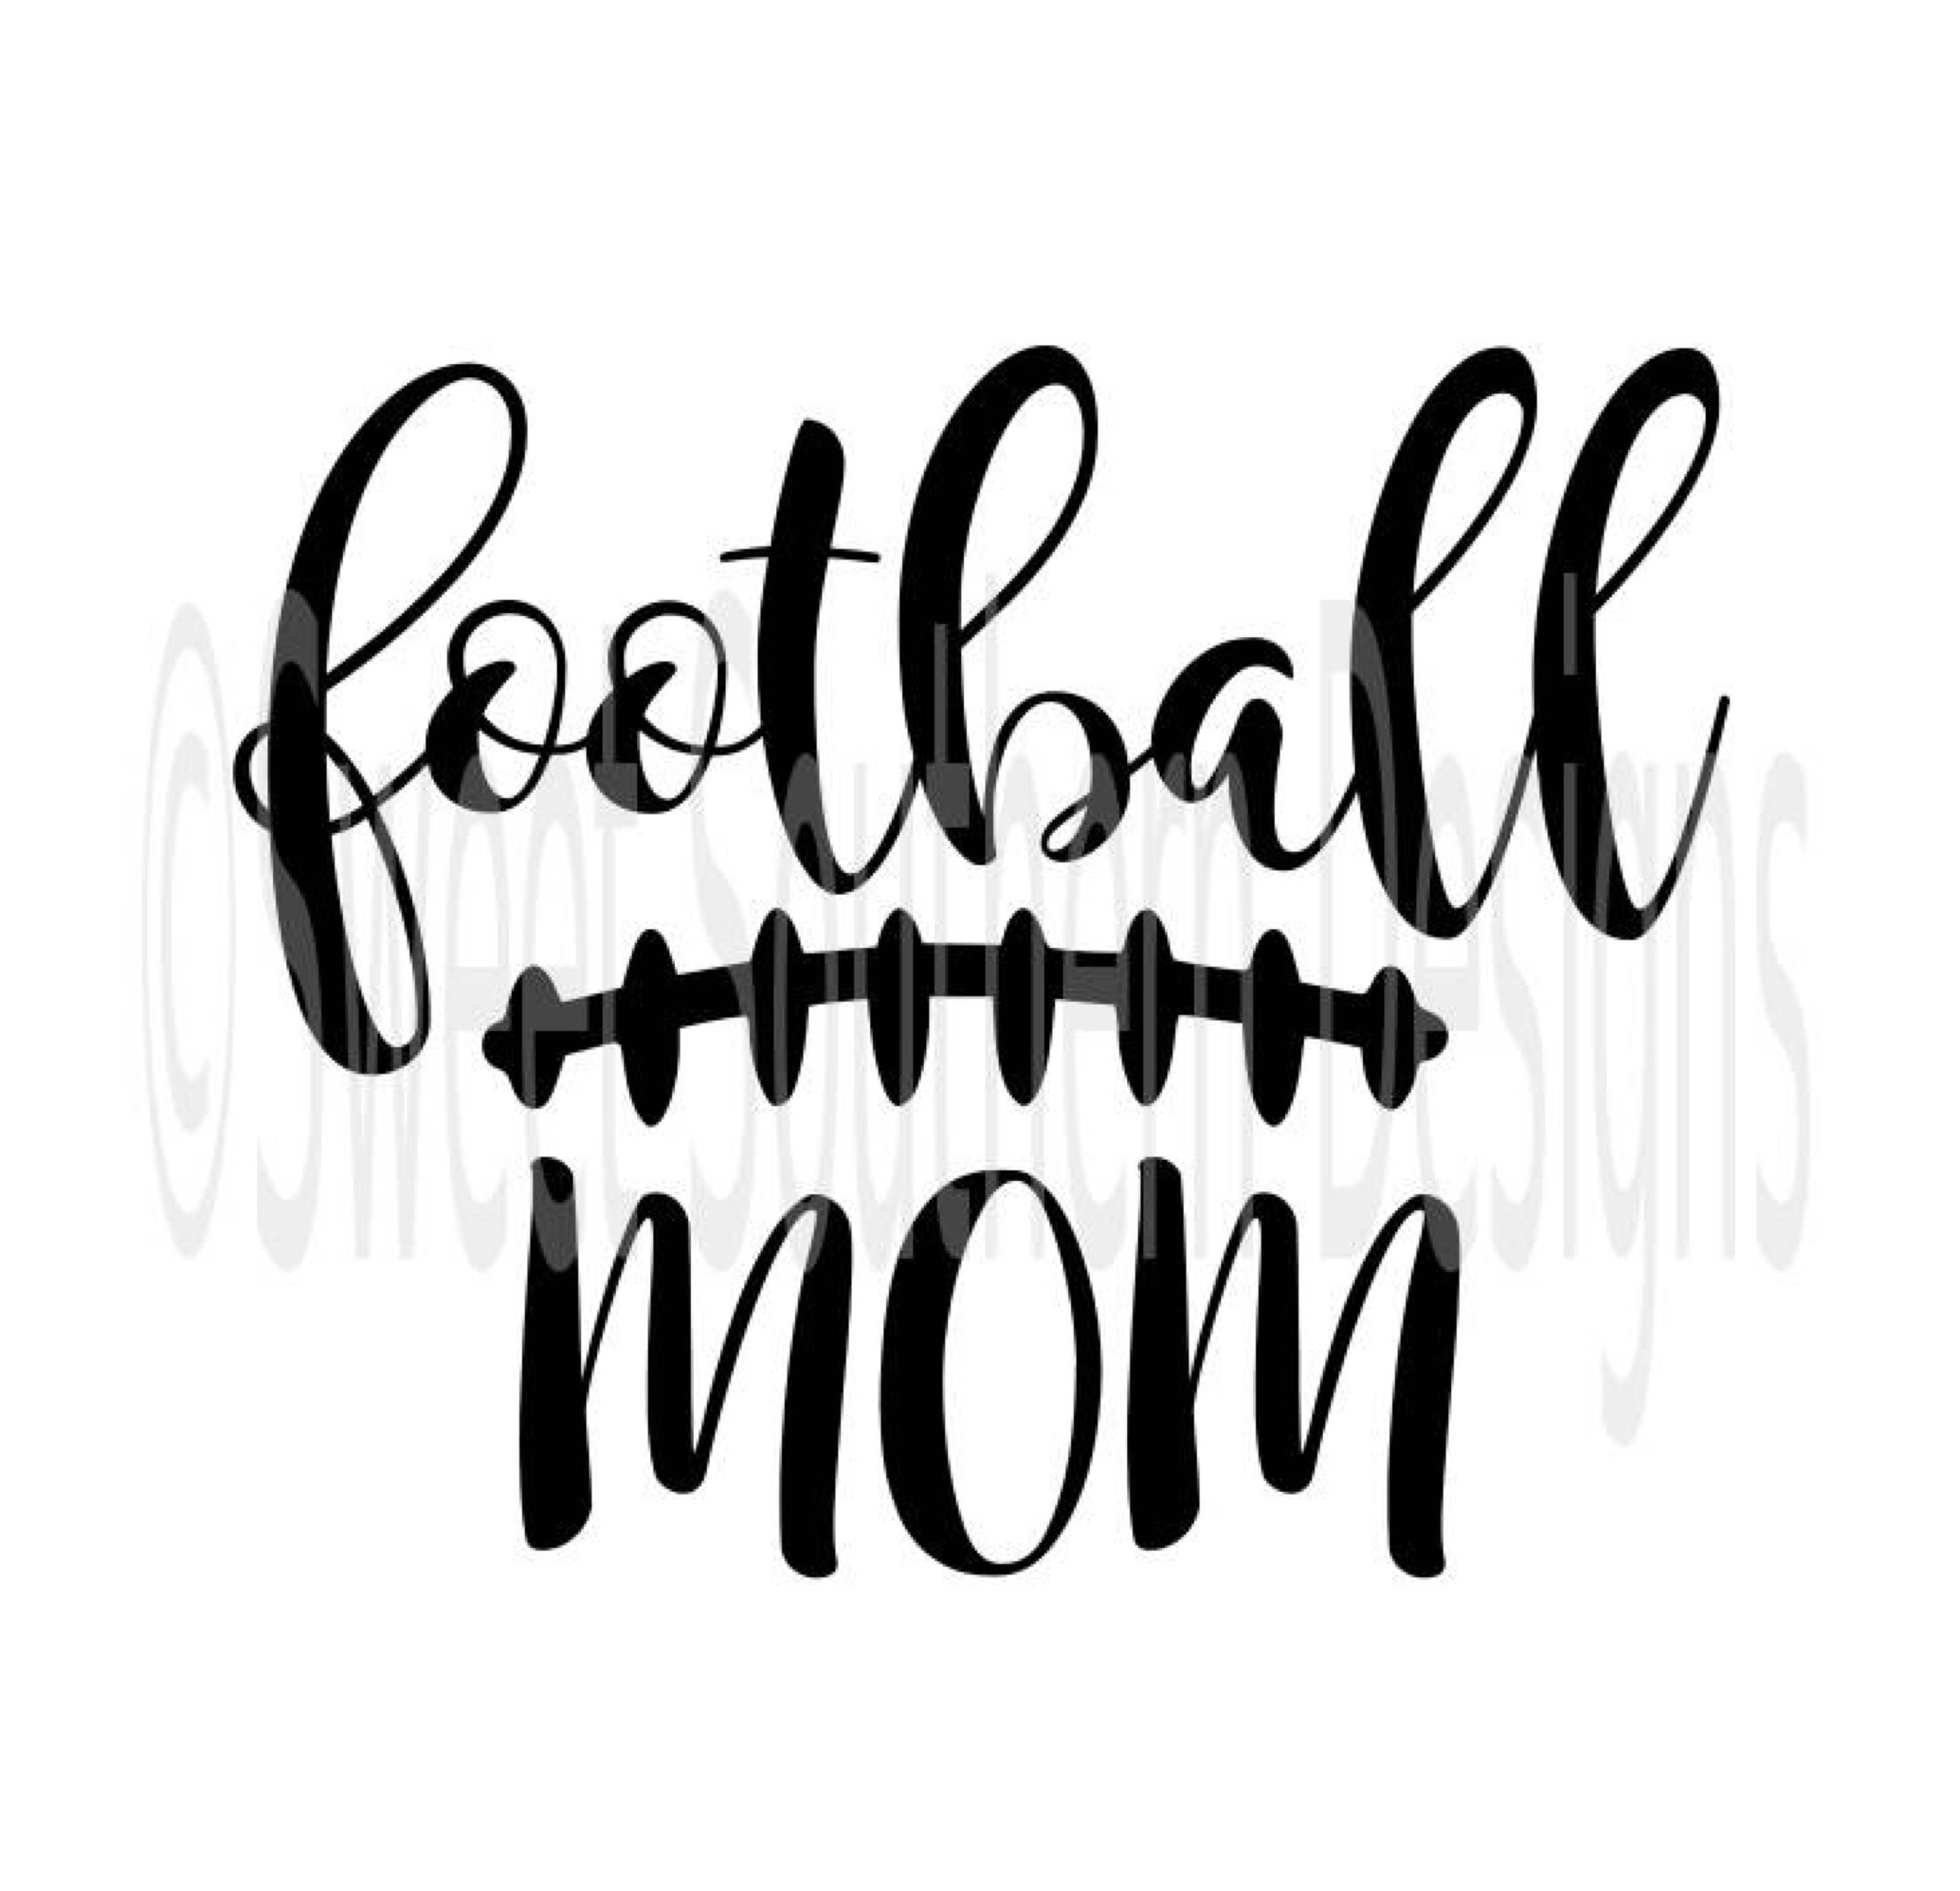 Football Laces Logo | Free download best Football Laces Logo